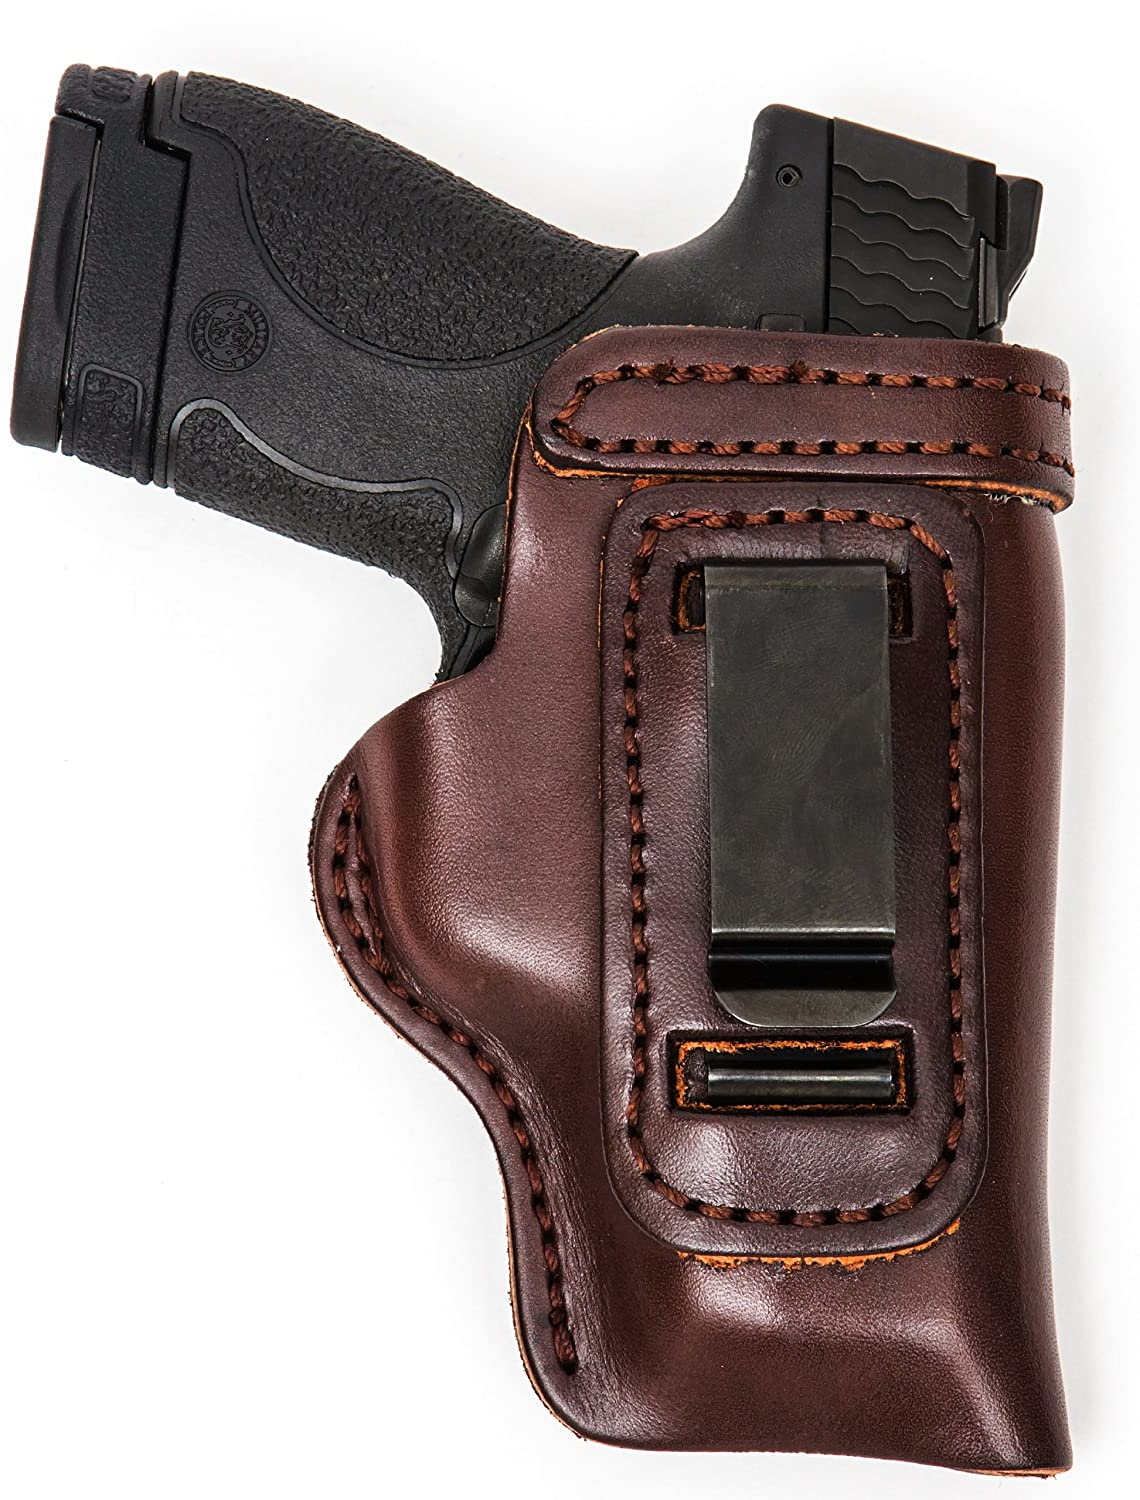 Best iwb holster for glock 26 reviews and top picks for Pro carry shirt tuck